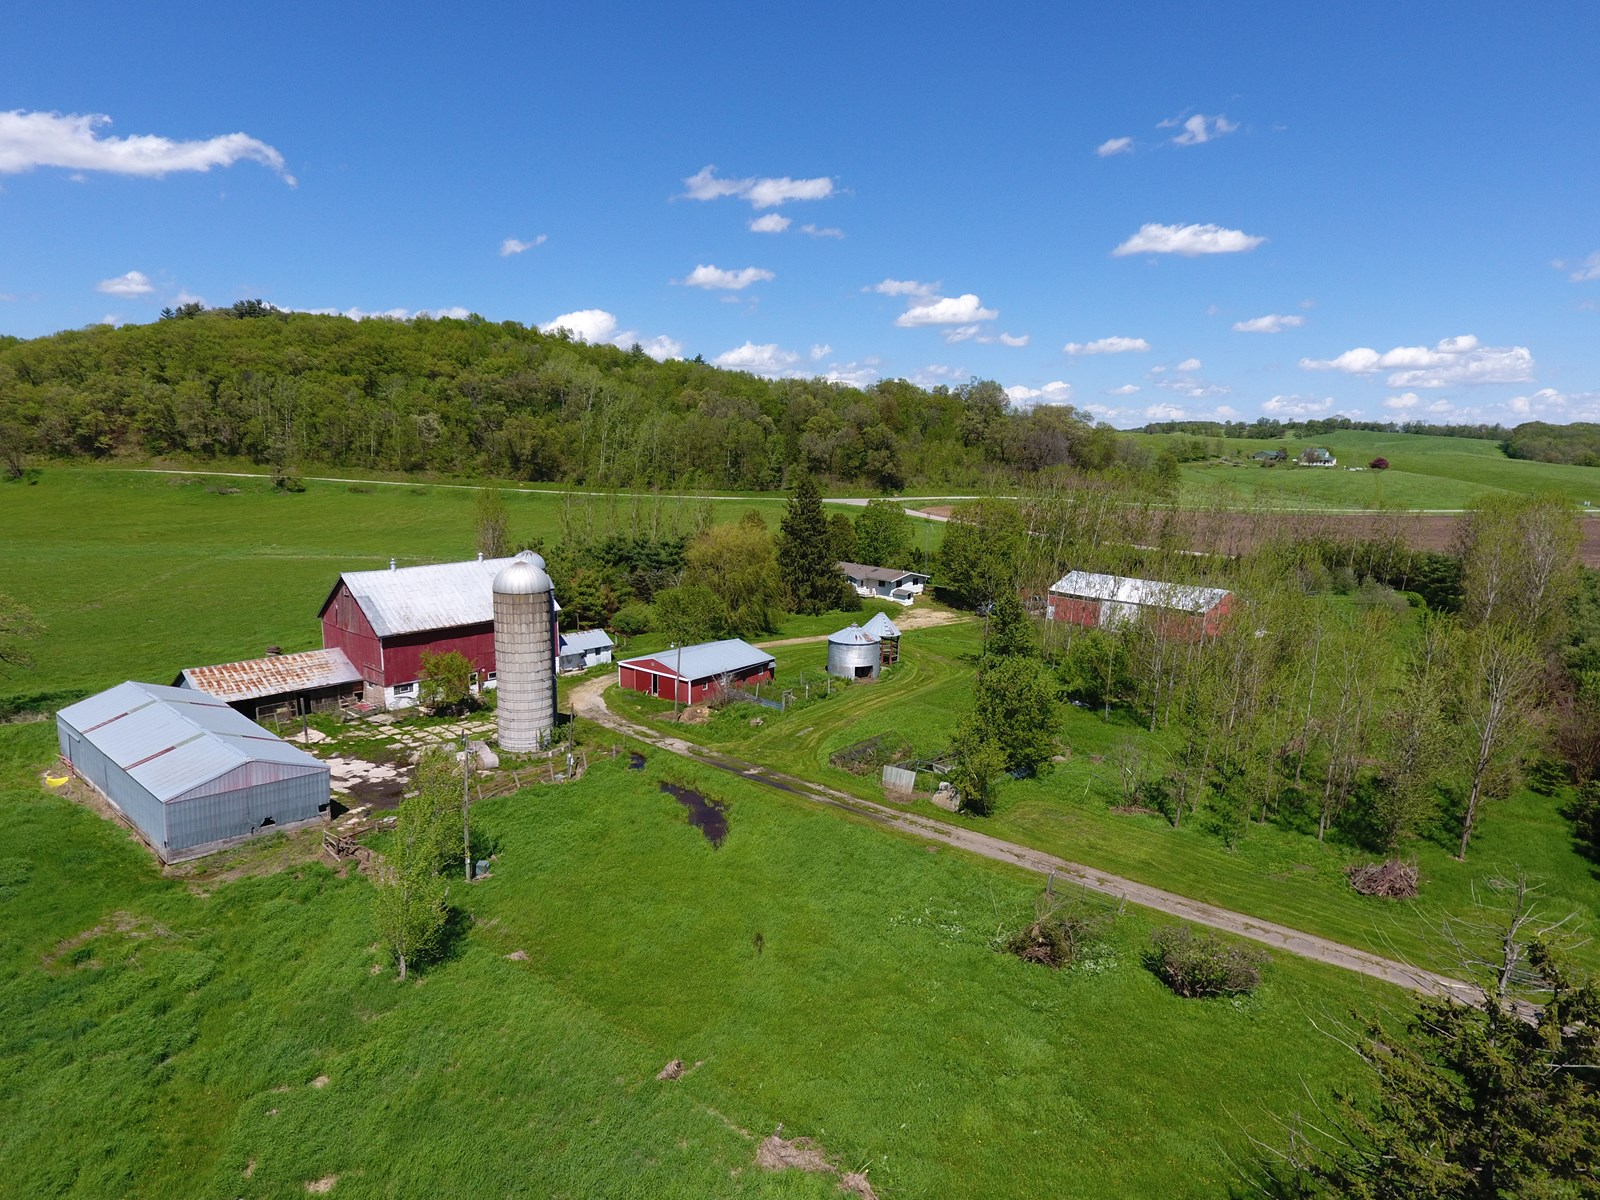 JUST SOLD! > Country Home/Hobby Farm For Sale in WI